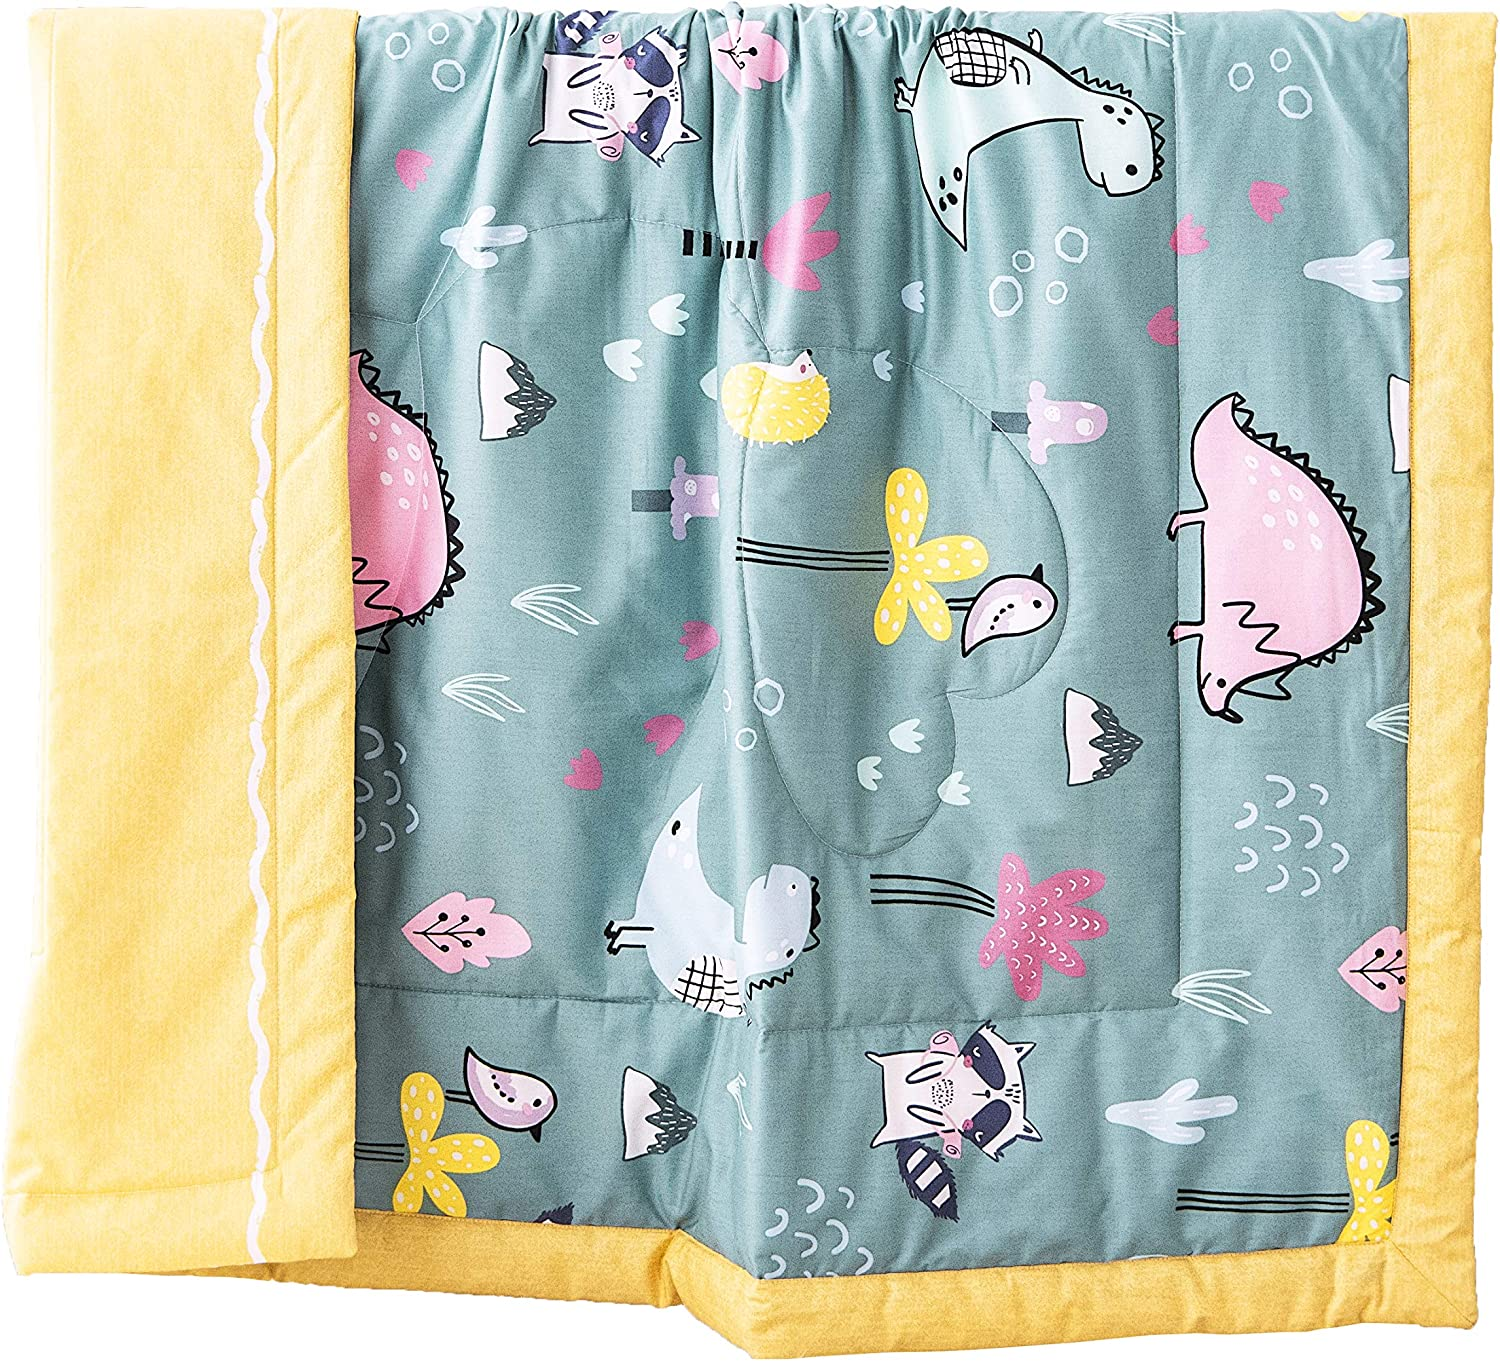 J-pinno Mermaid Cute Quilt Lightweight Comforterl for Toddler Girls Bed Coverlet Couch Sofa Outdoor Blanket Gift Standard Crib 47 X 59